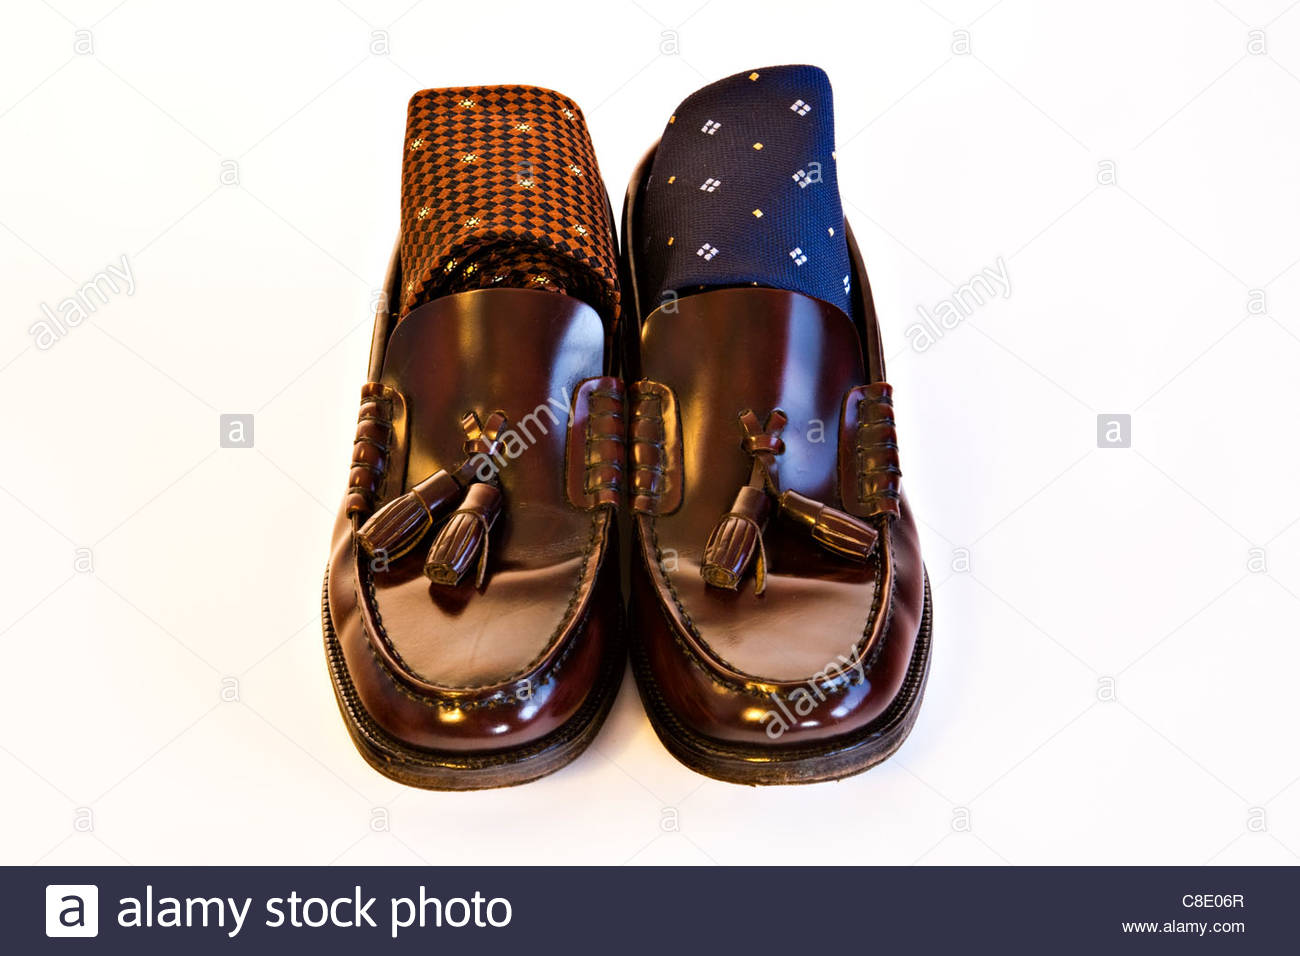 Men's brown polished leather shoes with ties on white background - Stock Image